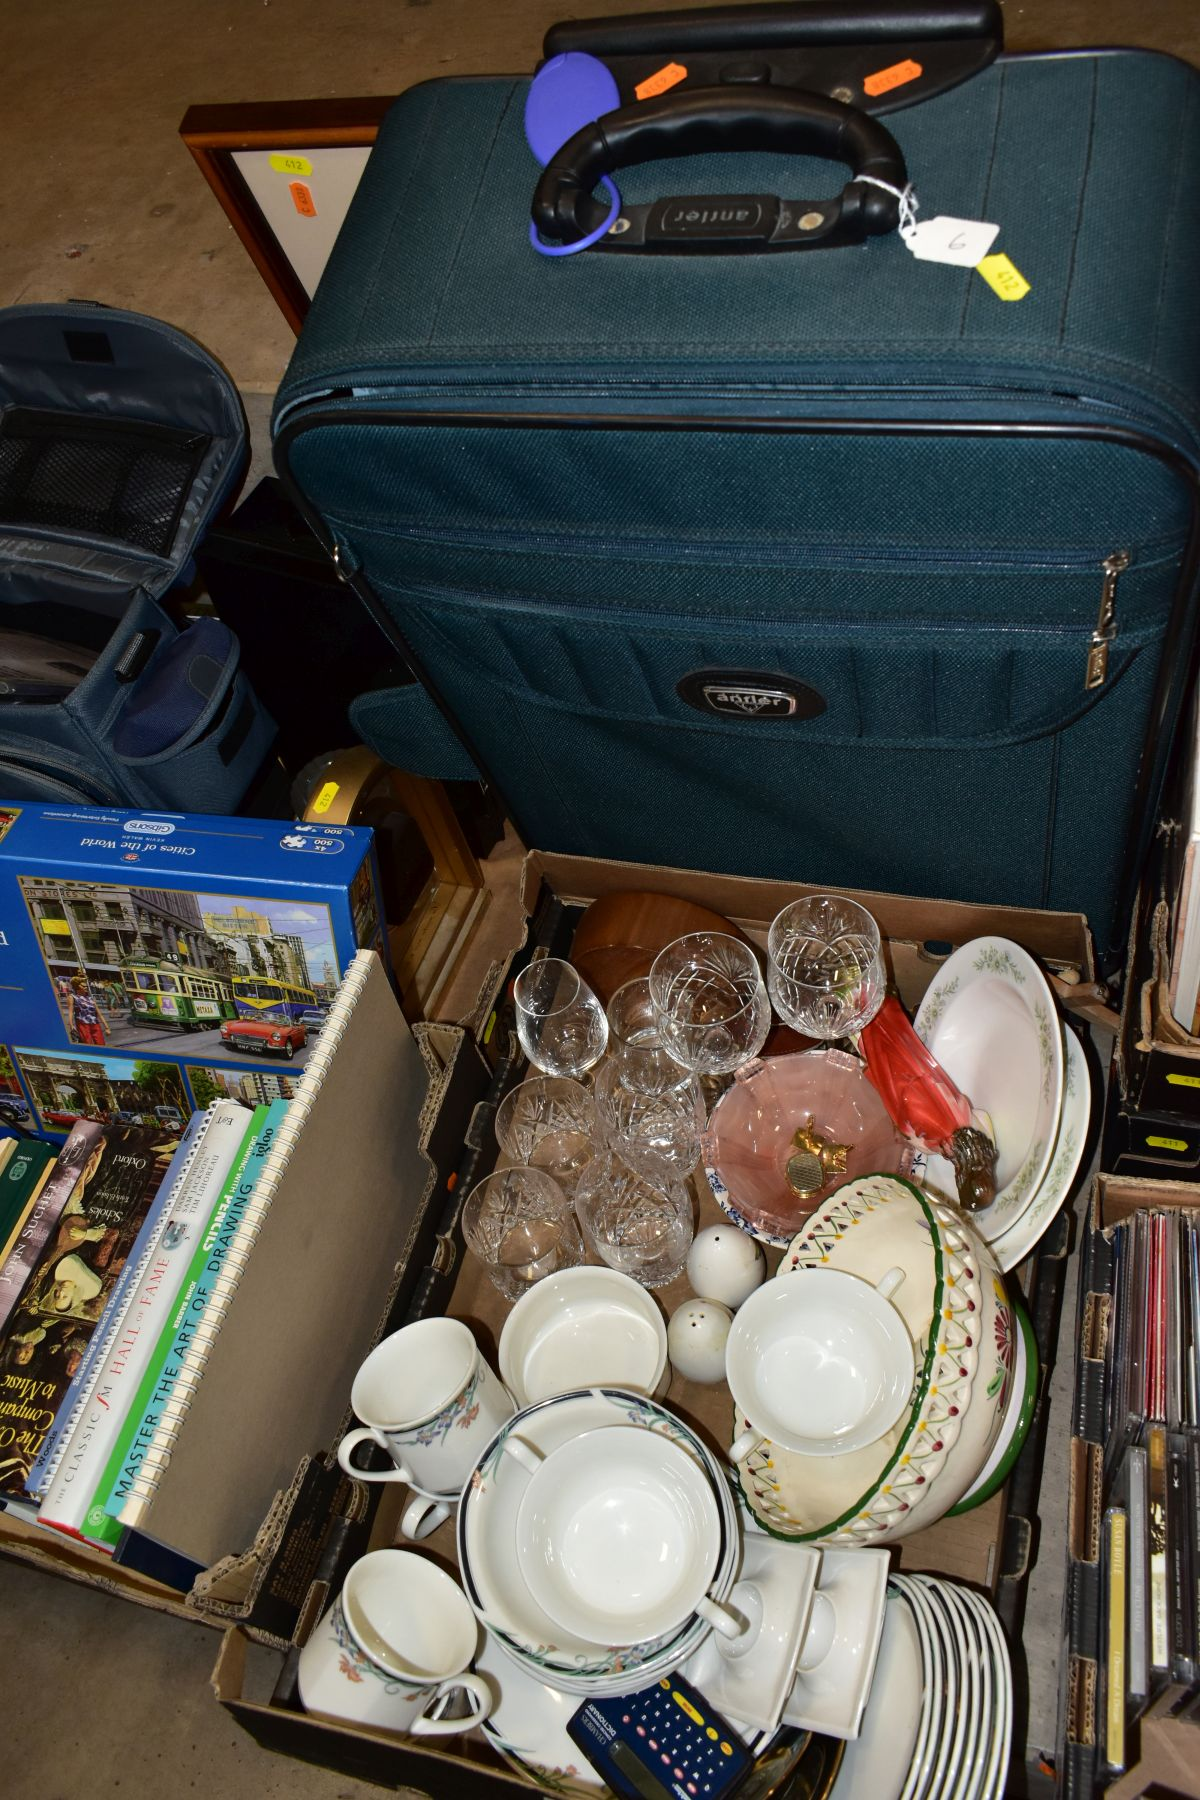 THREE BOXES AND LOOSE CERAMICS, GLASS, BOOKS, CD'S, A SUITCASE, ETC, including Royal Doulton Juno - Image 2 of 10